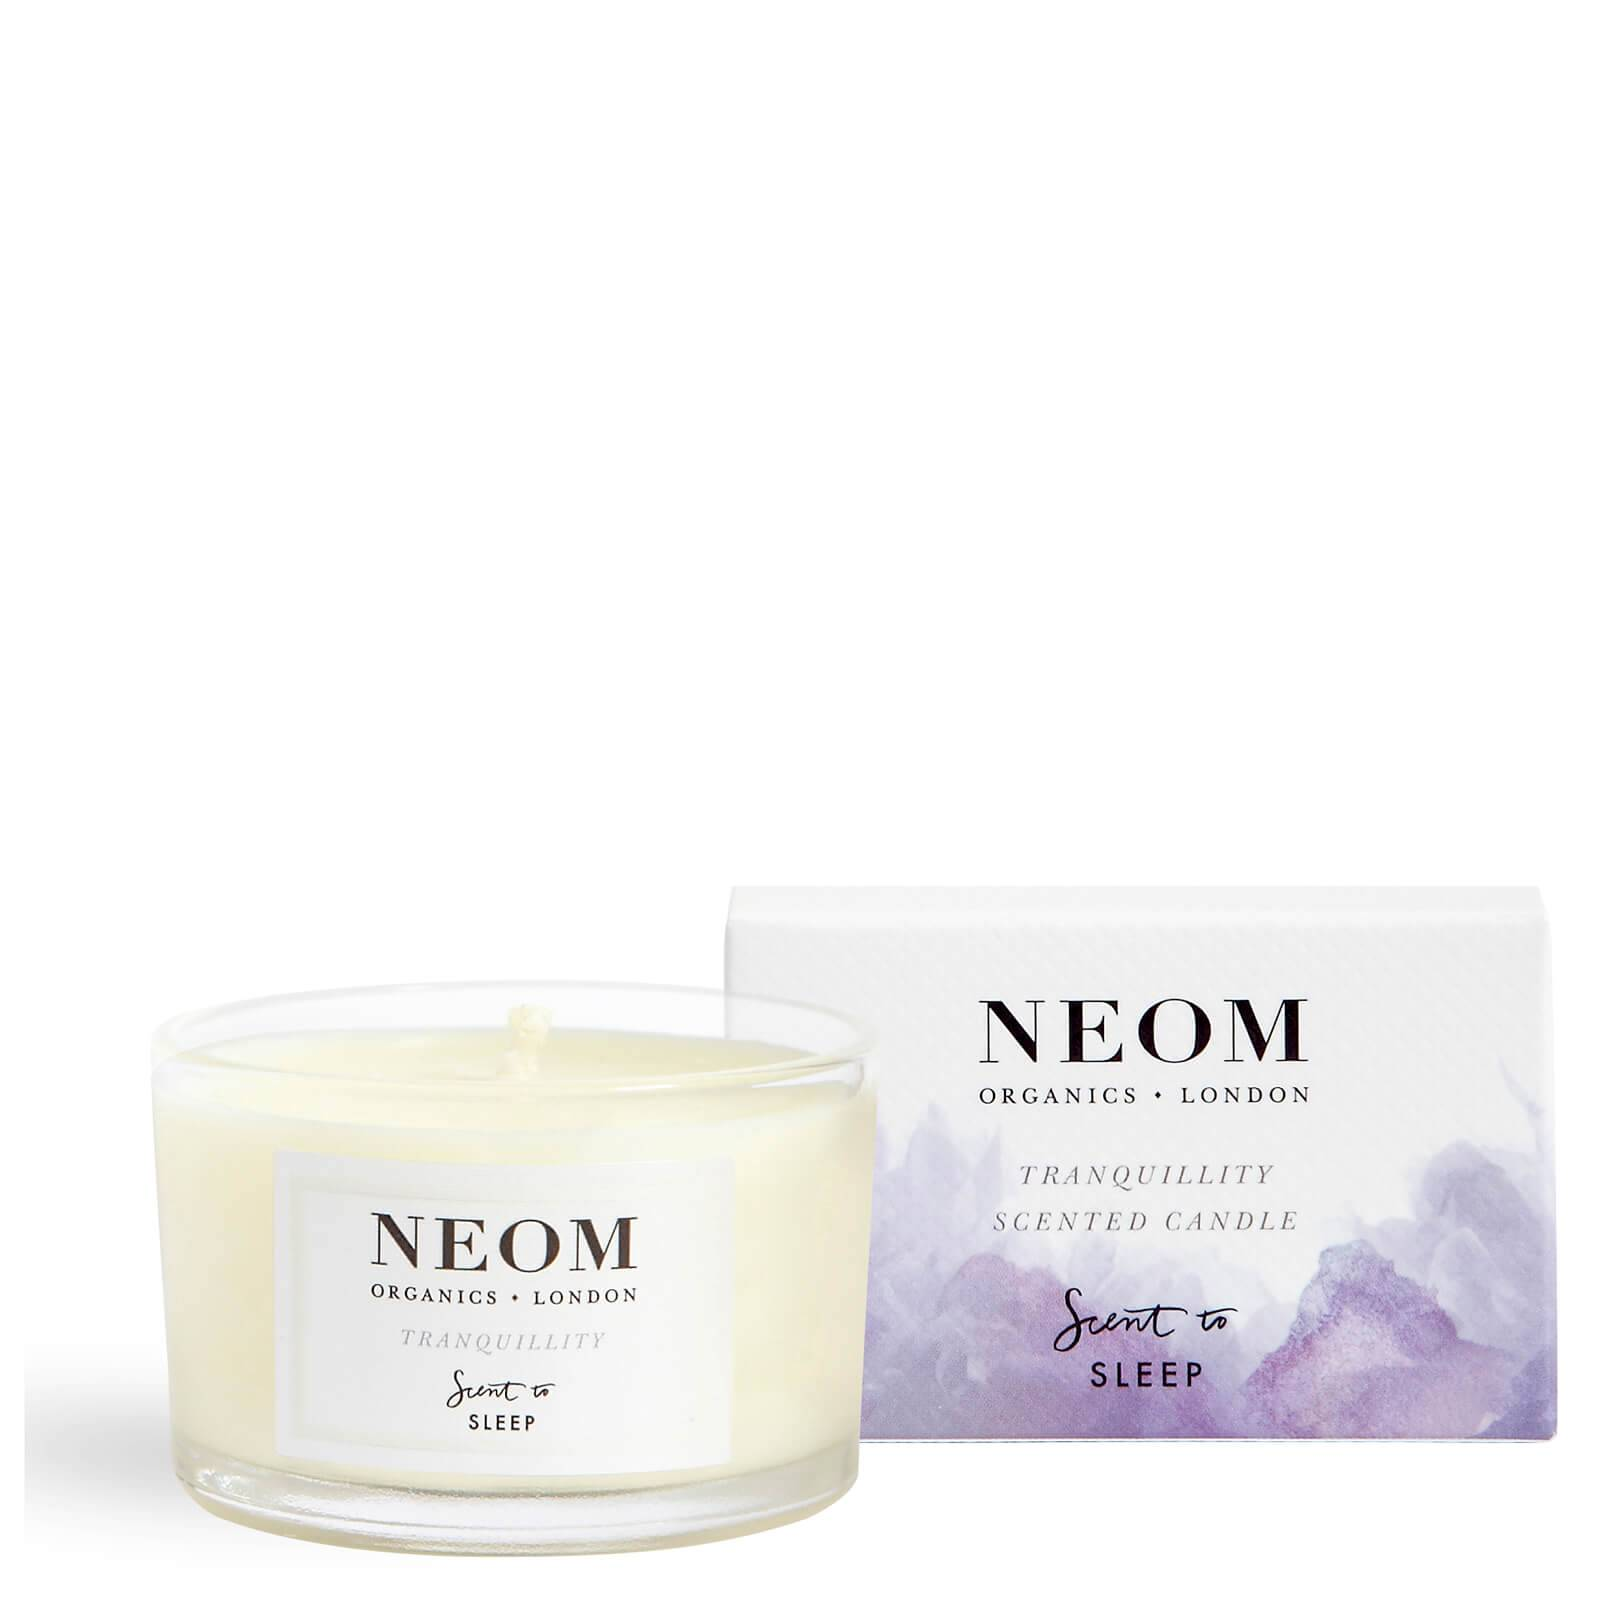 NEOM Tranquillity Scented Travel Candle